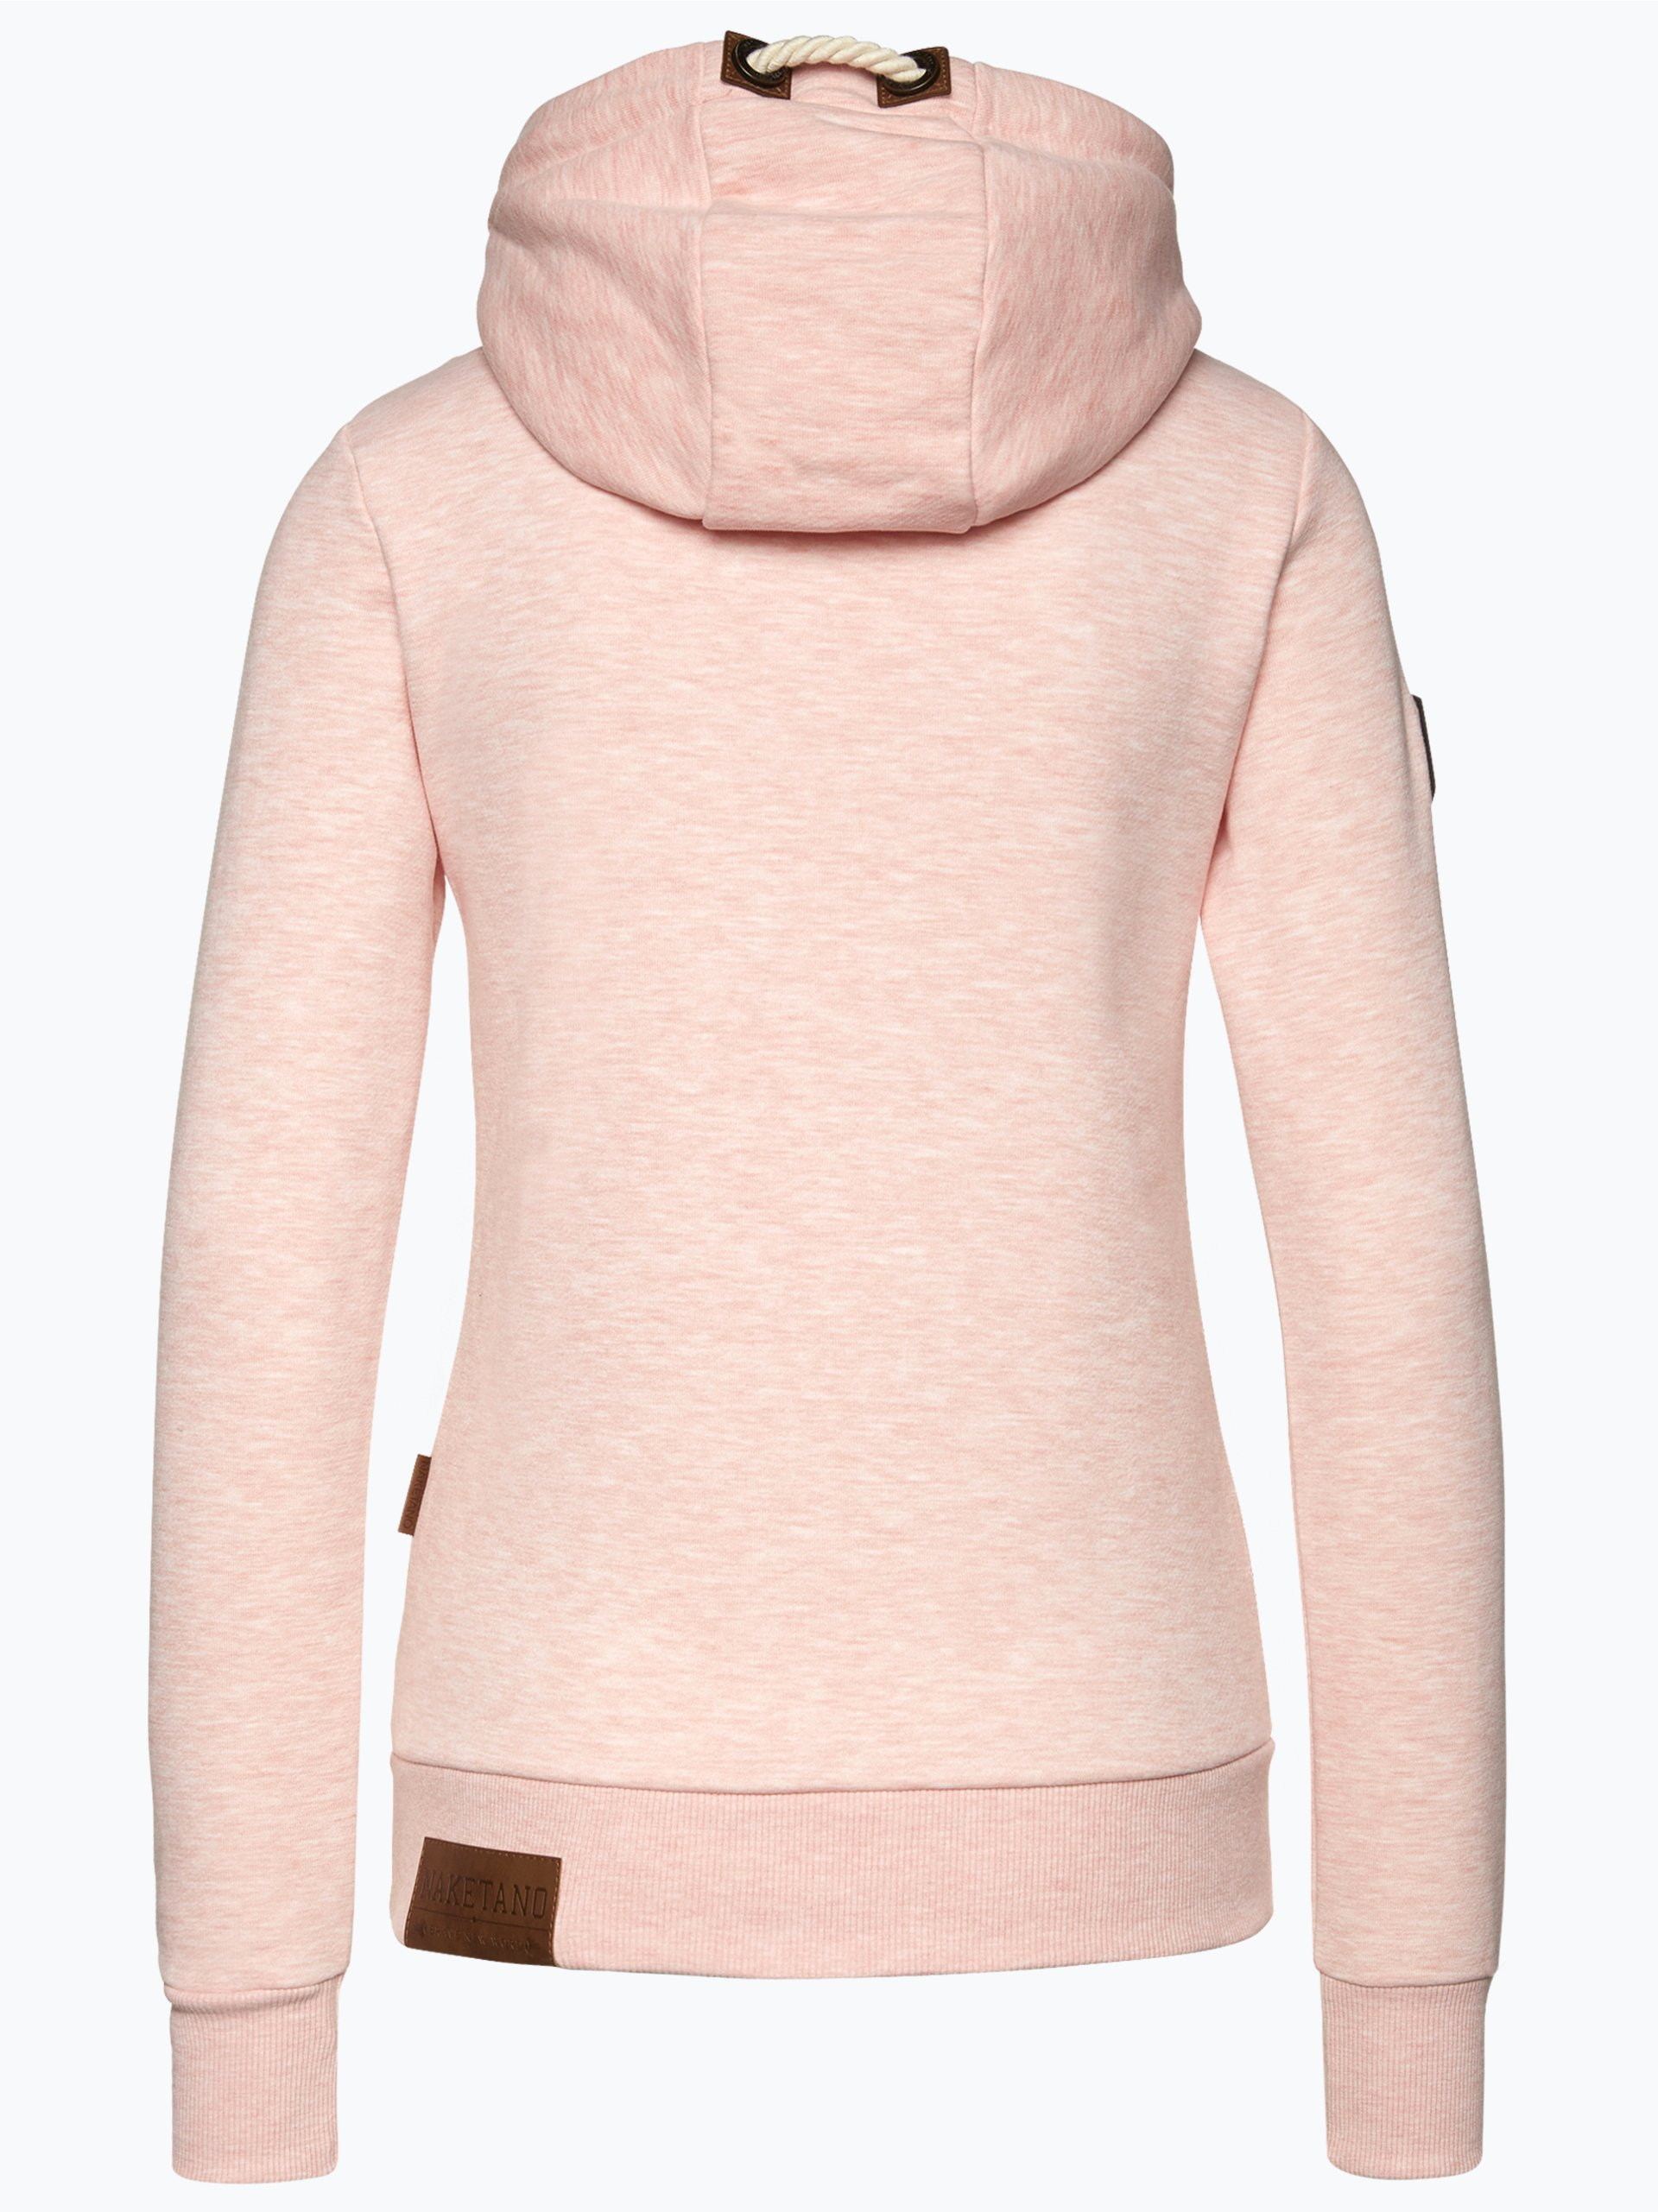 naketano damen sweatshirt rosa uni online kaufen vangraaf com. Black Bedroom Furniture Sets. Home Design Ideas